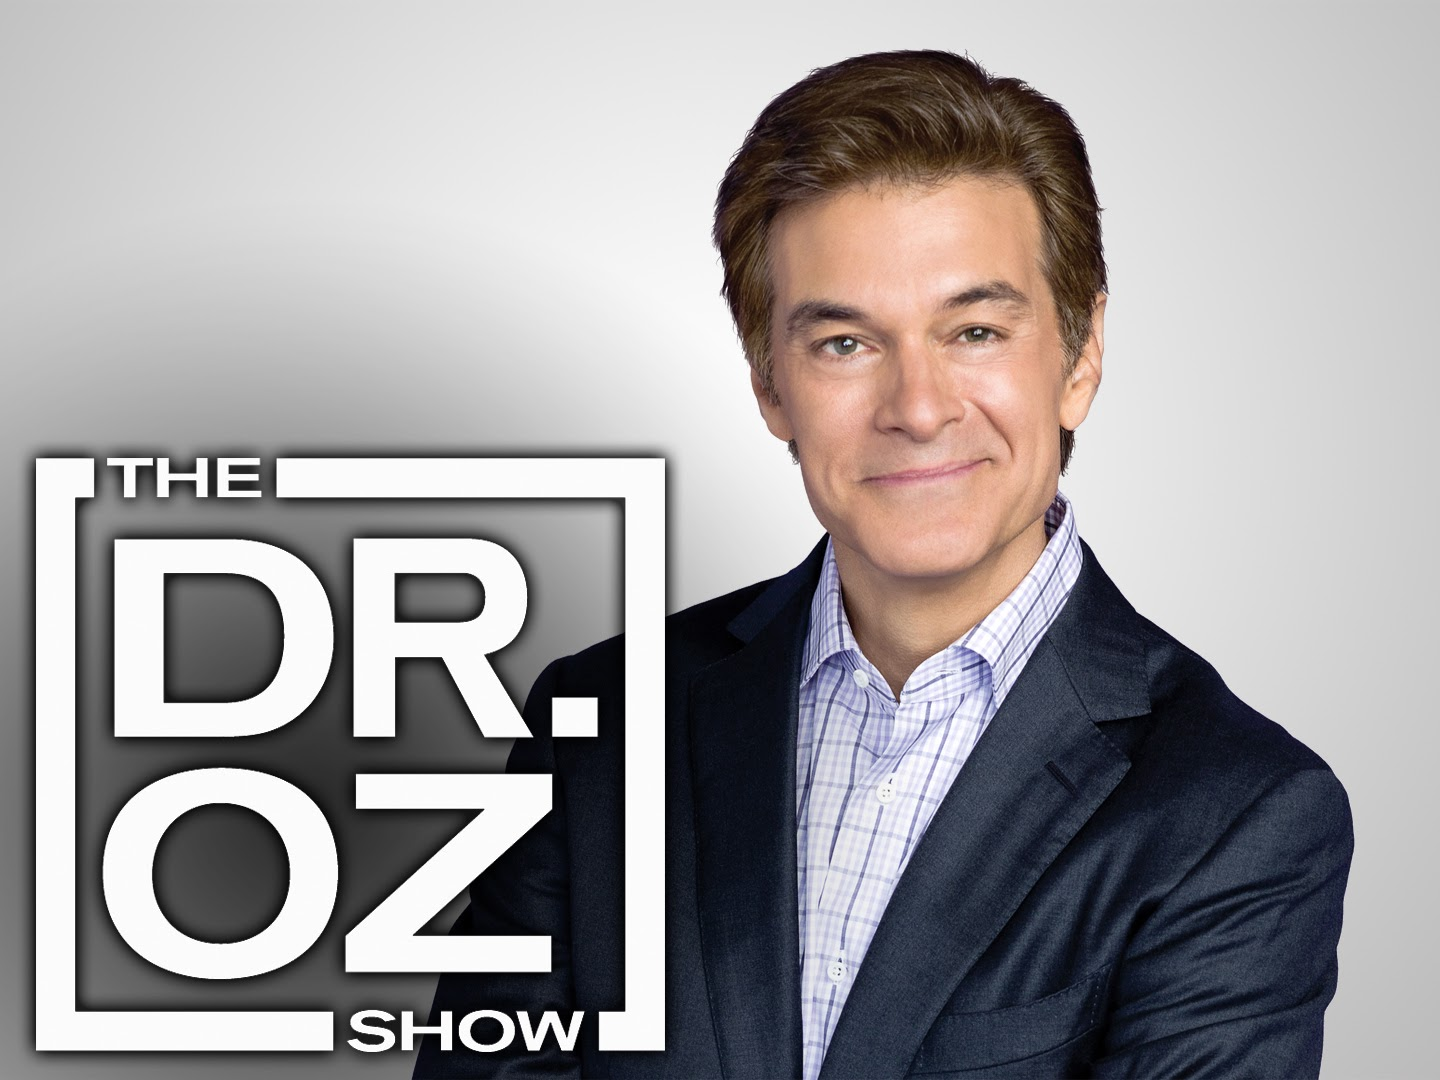 The-Dr-Oz-Show.jpg